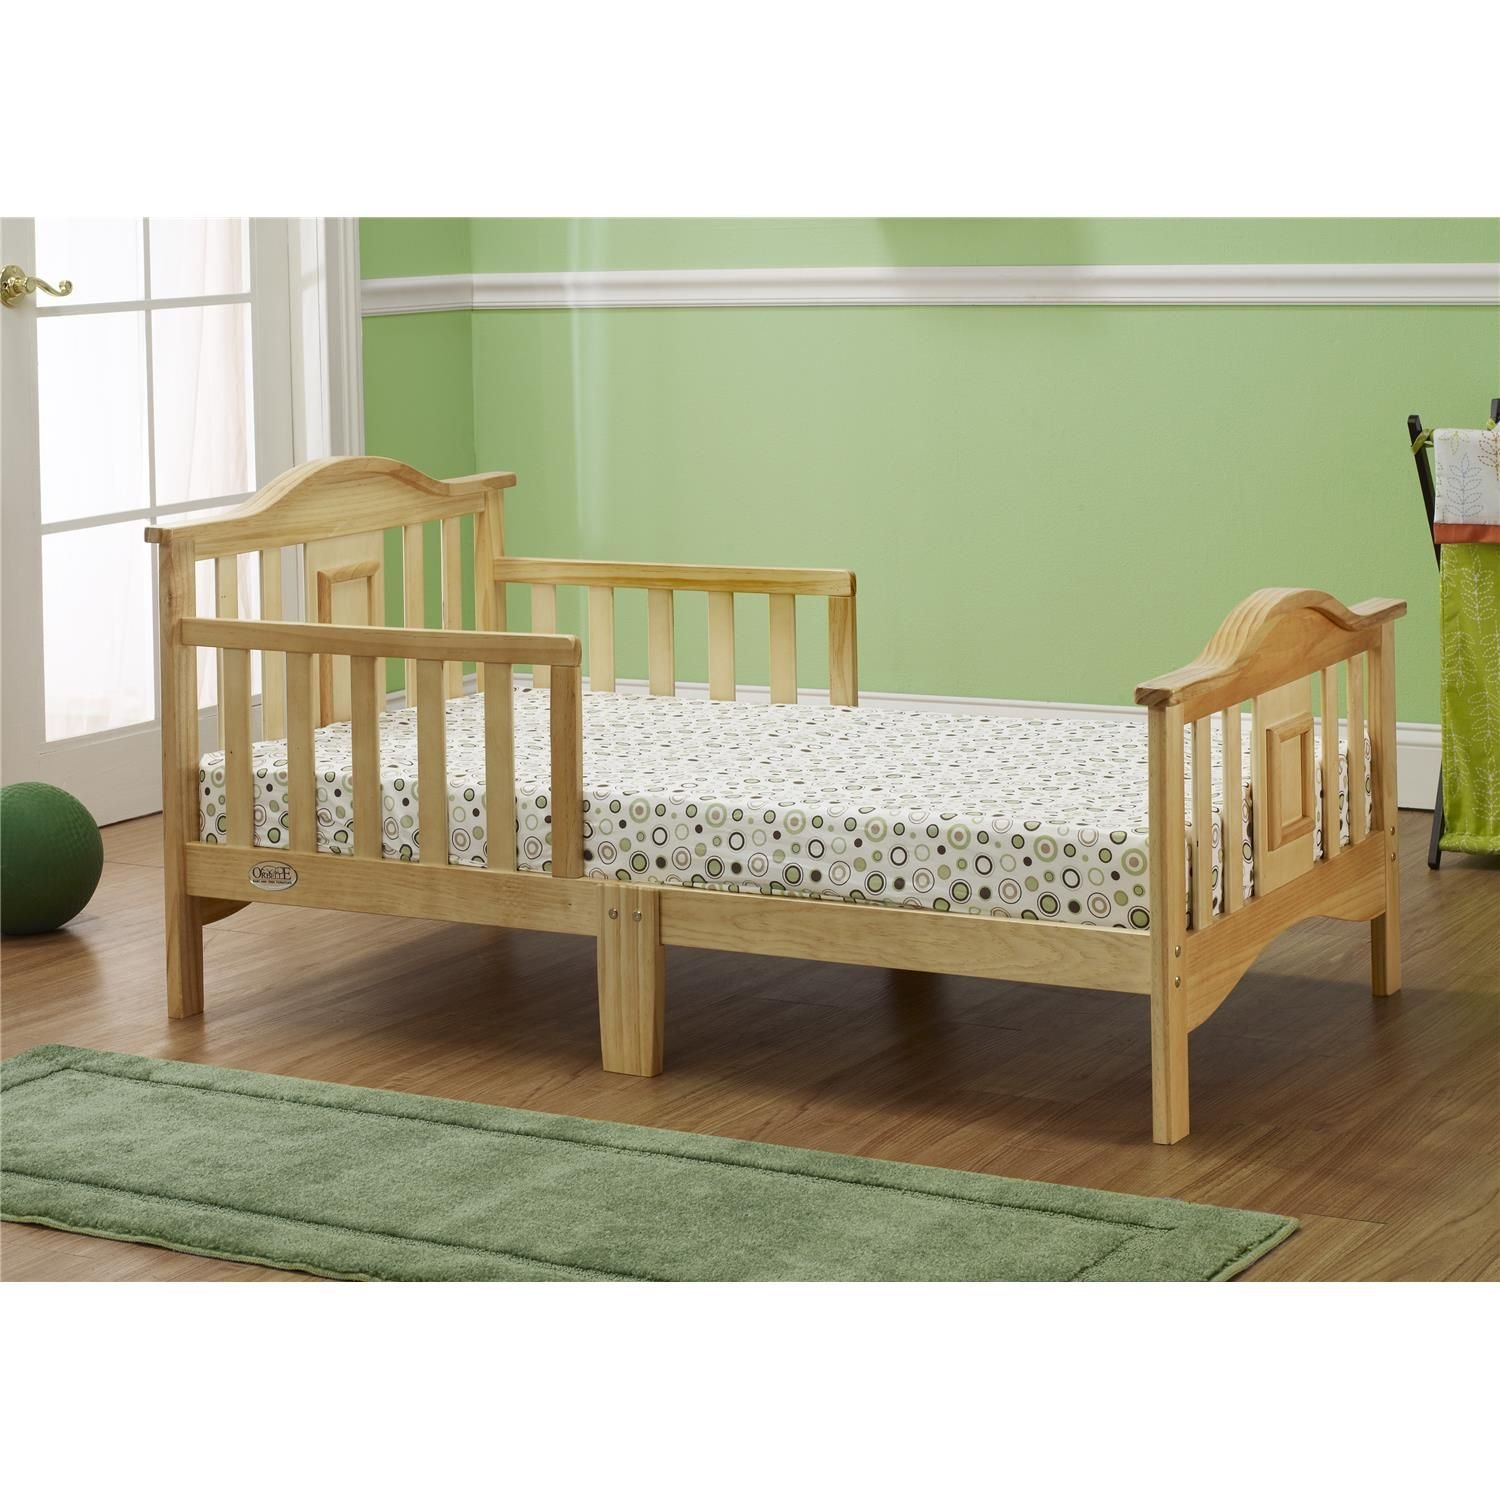 Orbelle Contemporary Toddler Bed in Natural